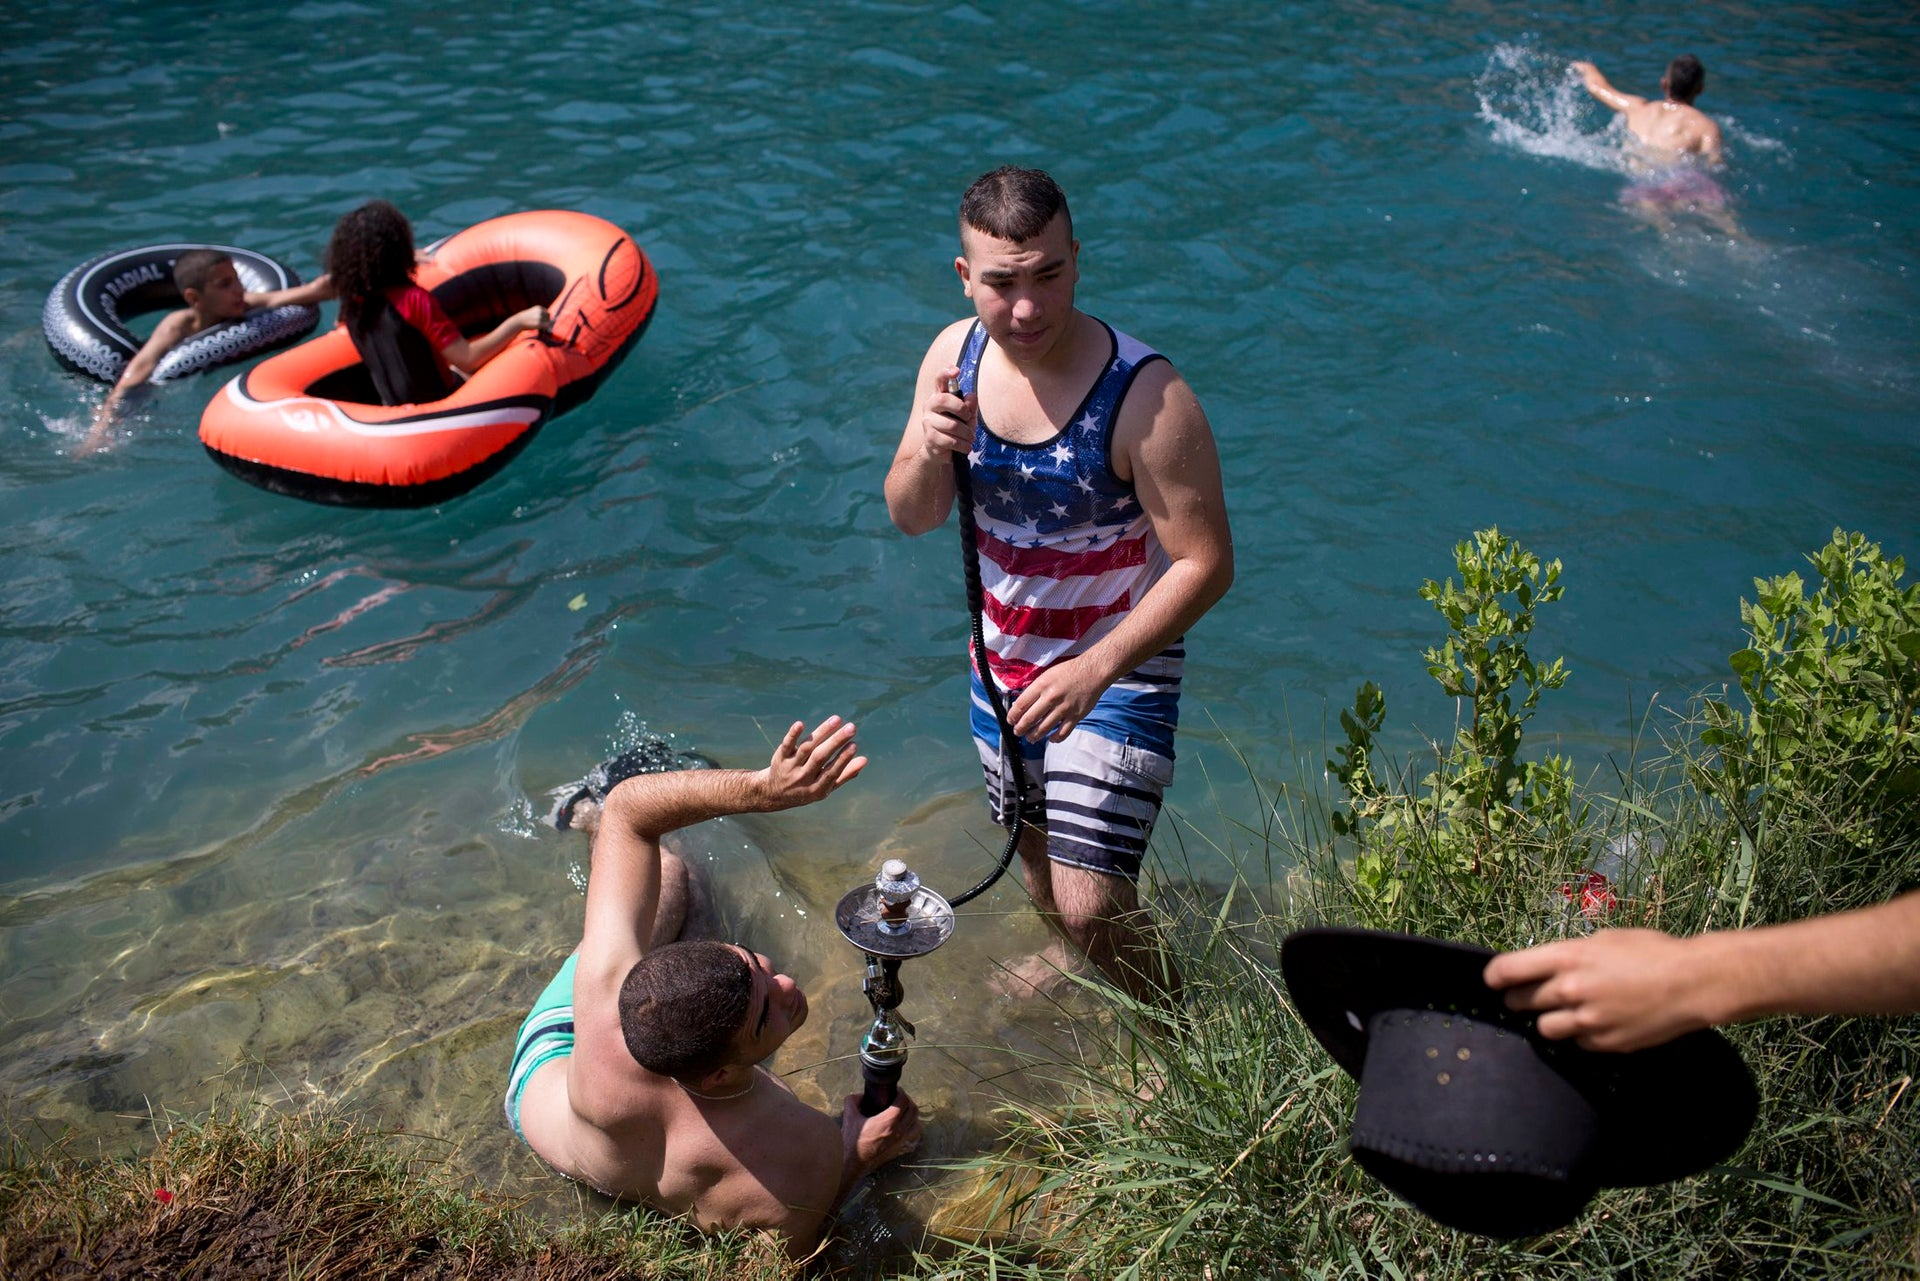 Israeli Arabs cool off in a spring as they celebrate the Eid al-Fitr holiday at the Gan HaShlosha national park near the northern Israeli Town of Beit Shean, Friday, July 8, 2016. Eid al-Fitr marks the end of the Muslim holy fasting month of Ramadan.